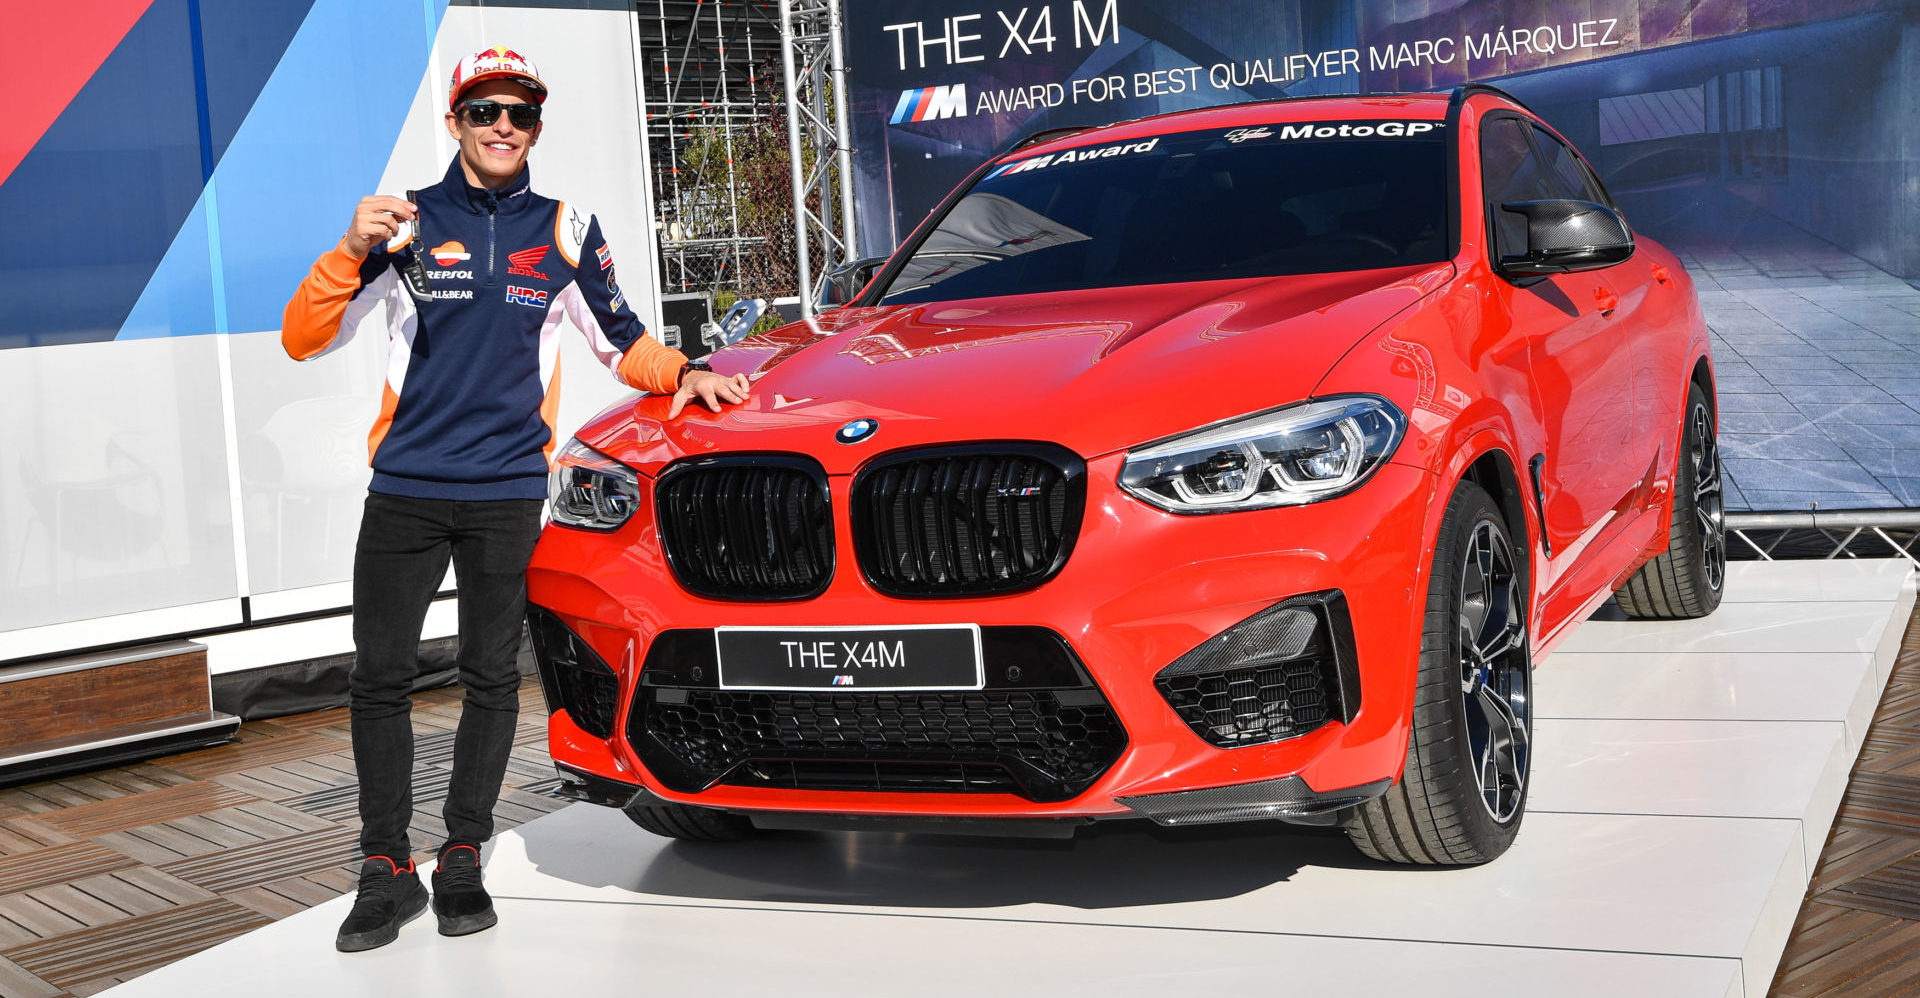 Marc Marquez with the BMW M Award grand prize - a BMW X4 M Competition. Photo courtesy of Dorna.